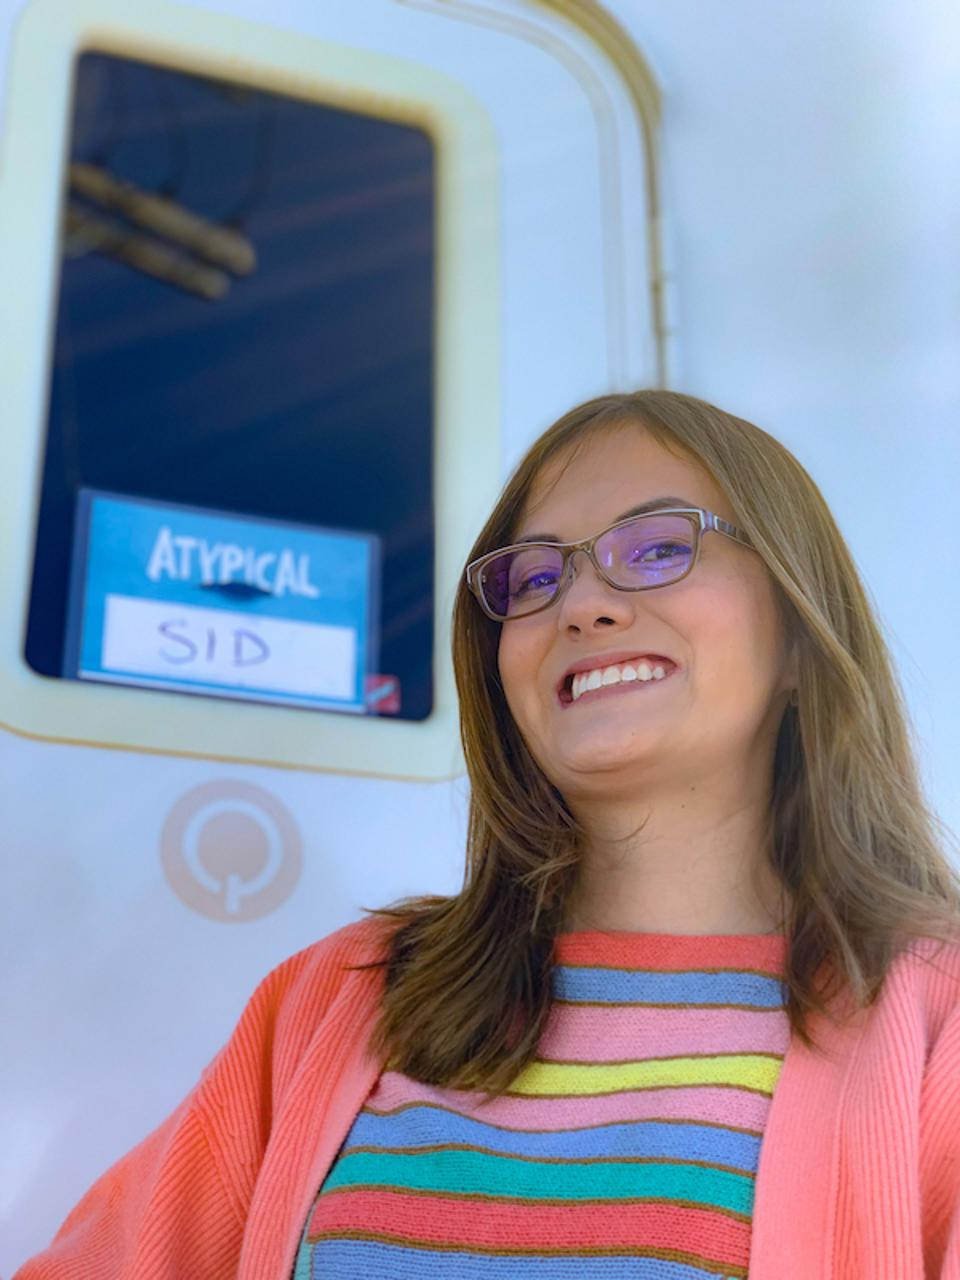 A woman with brown hair & glasses, poses in front of her trailer on the set of Atypical.